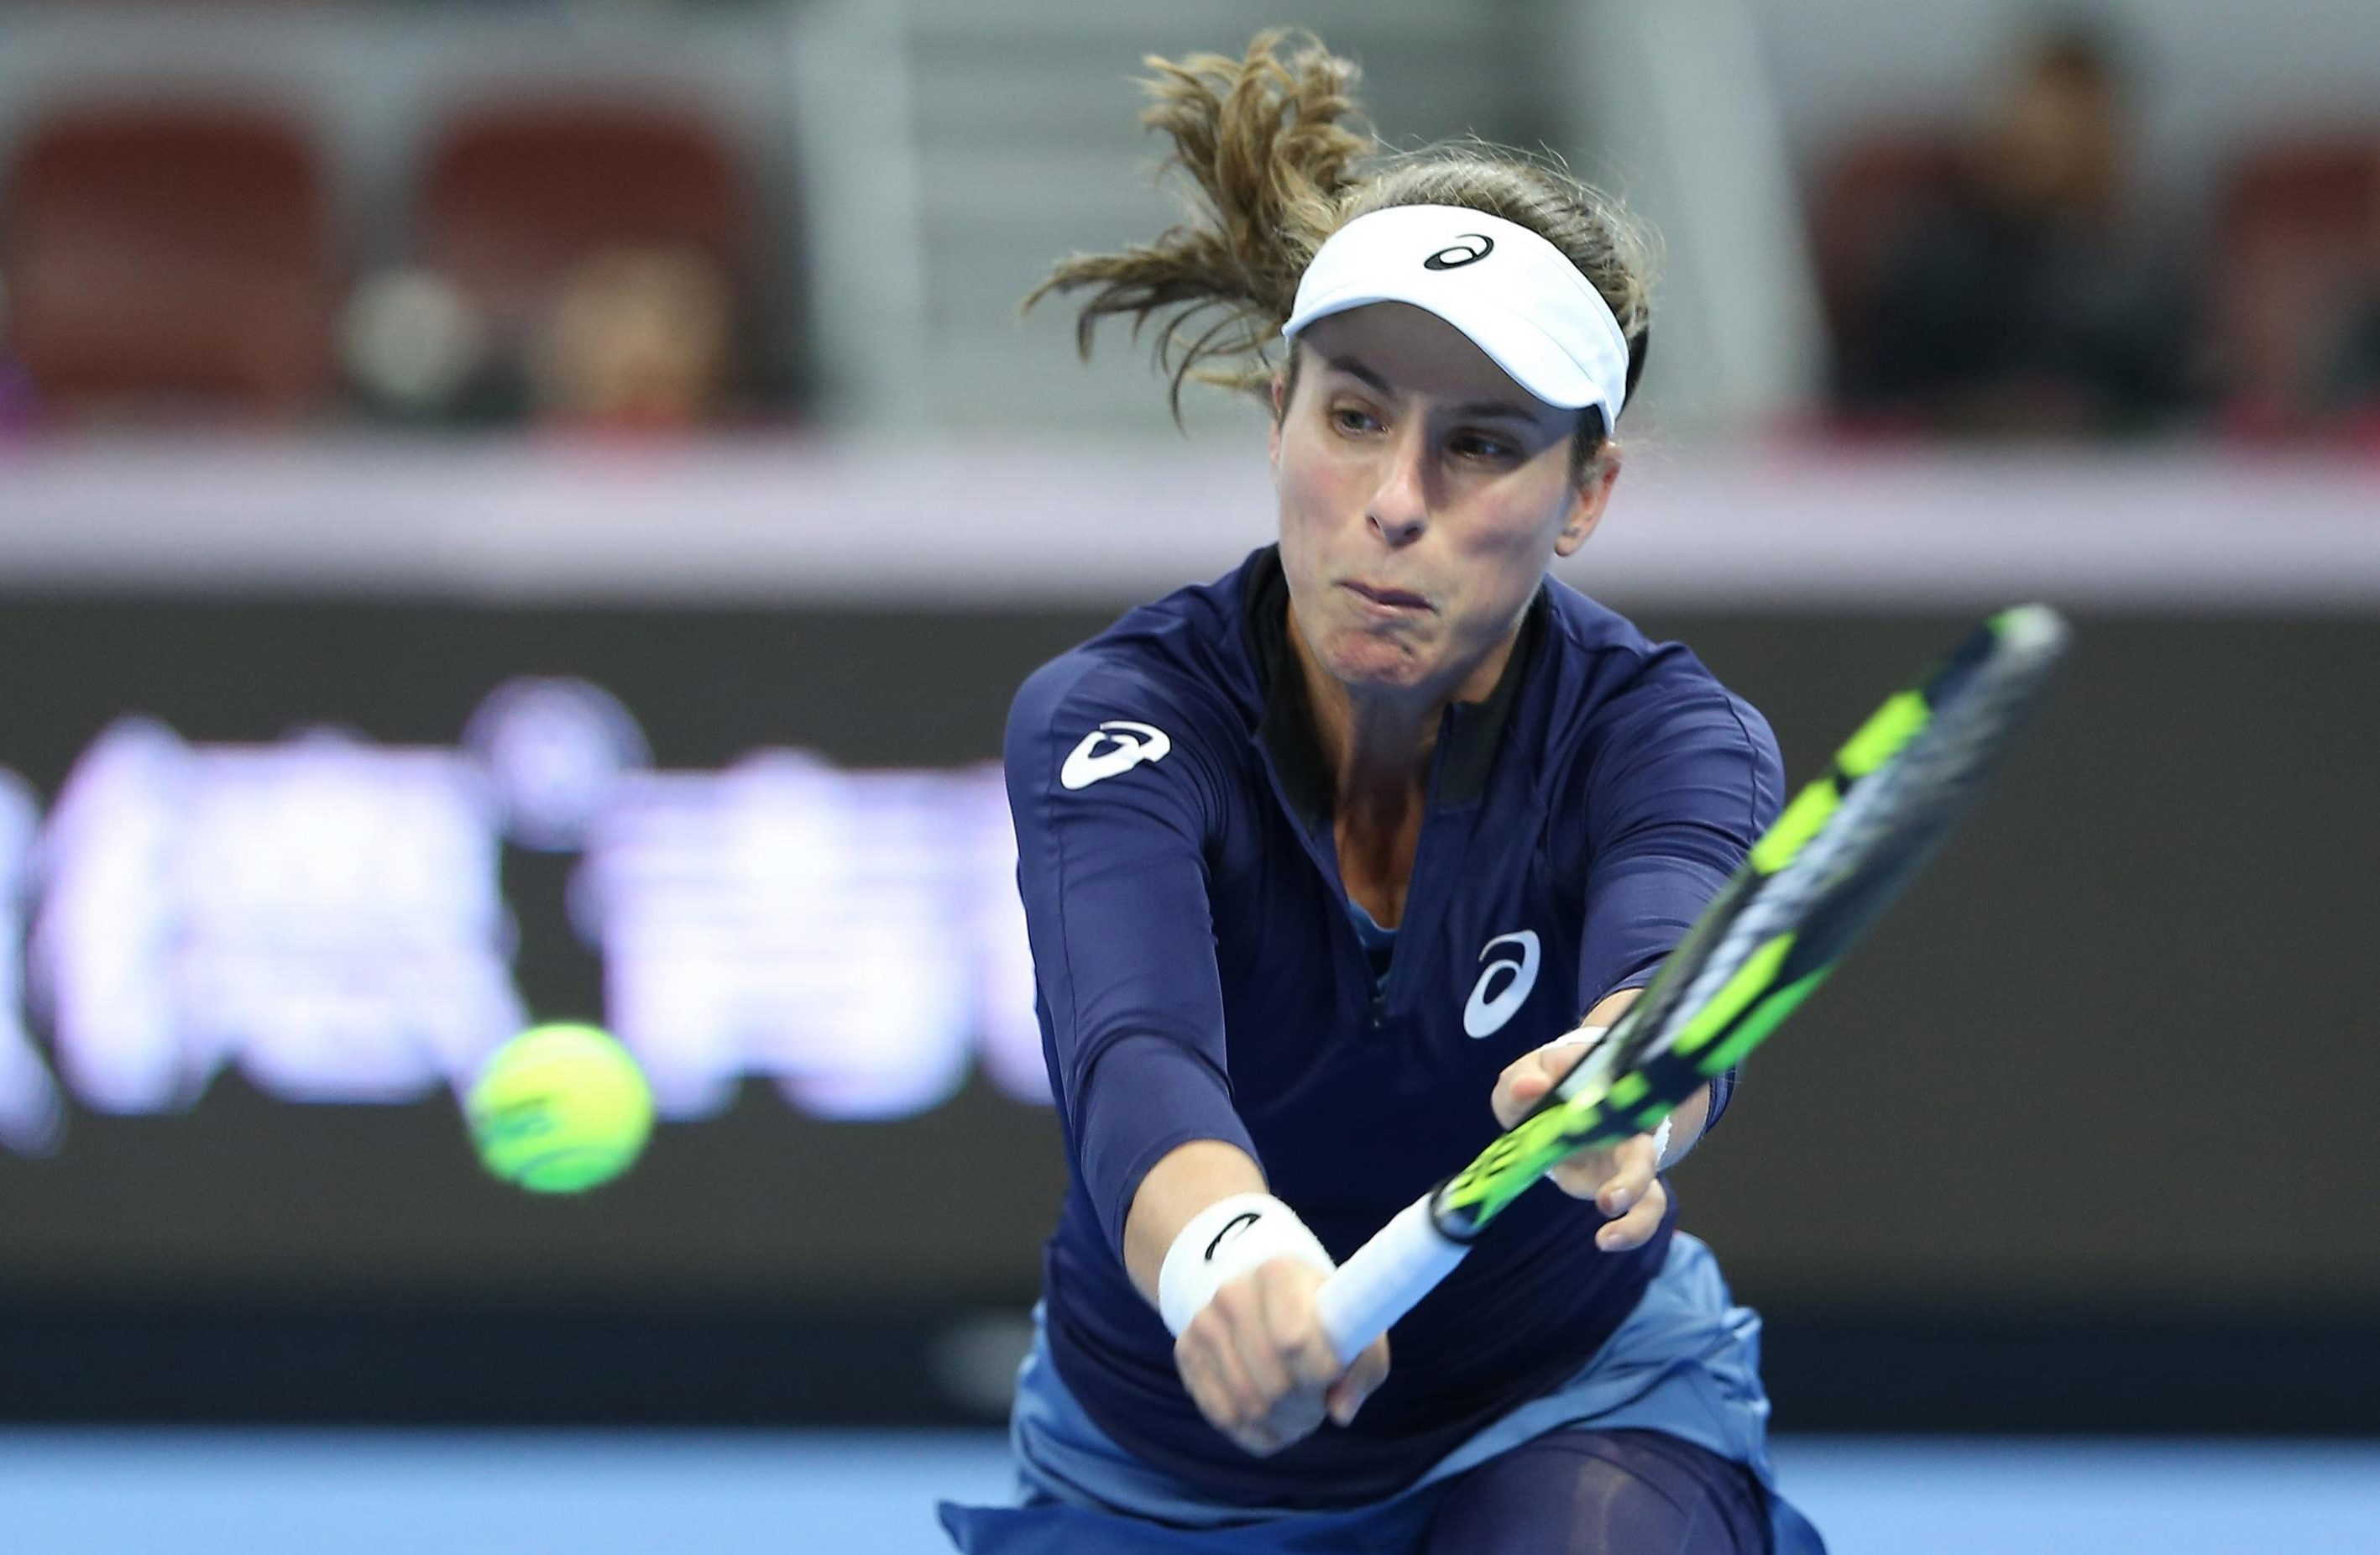 Jo Konta has fallen to 45th in the world after a poor year